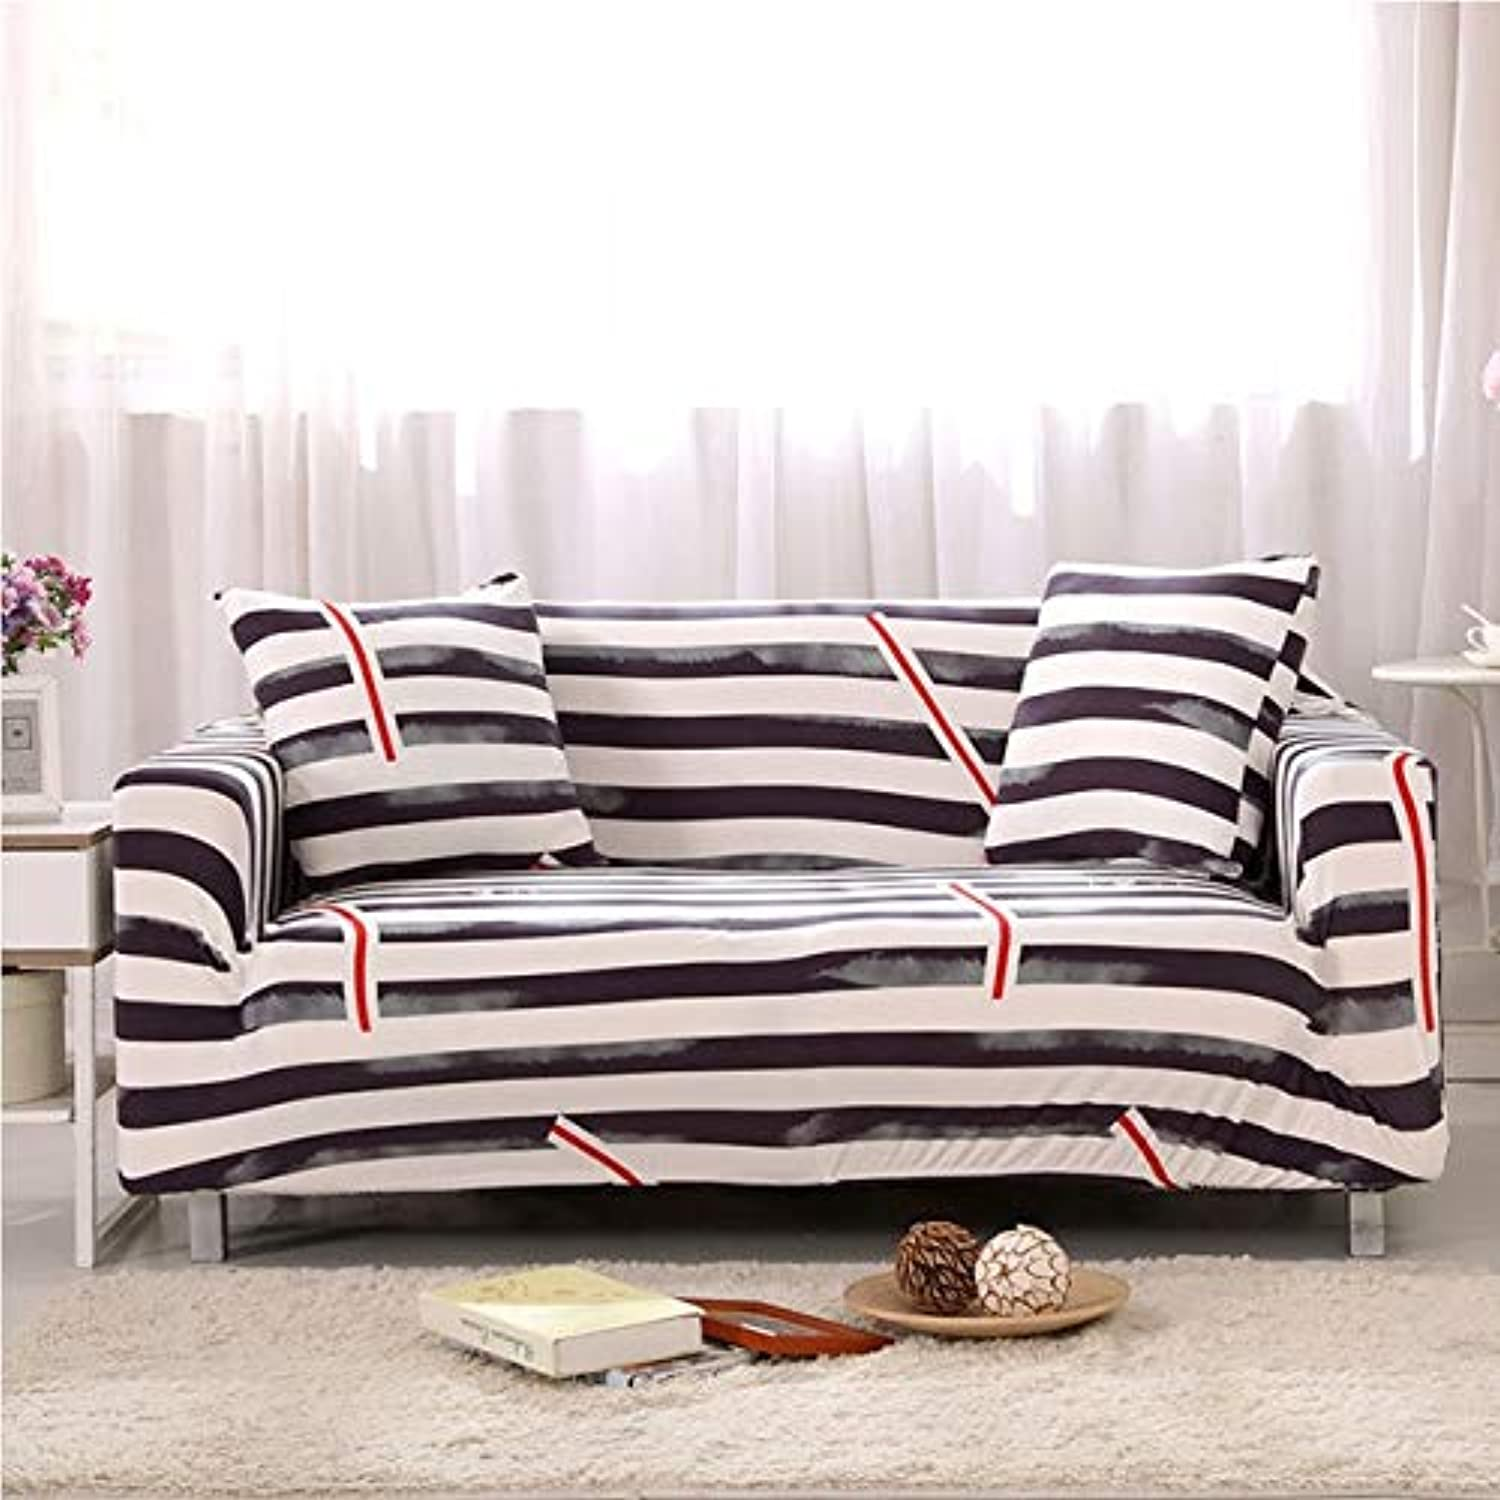 Slipcover Flower Sofa Cover Tight Wrap All-Inclusive Slip-Resistant Corner Covers Sectional Elastic One Two Three Four Seat 018   C, Three seat